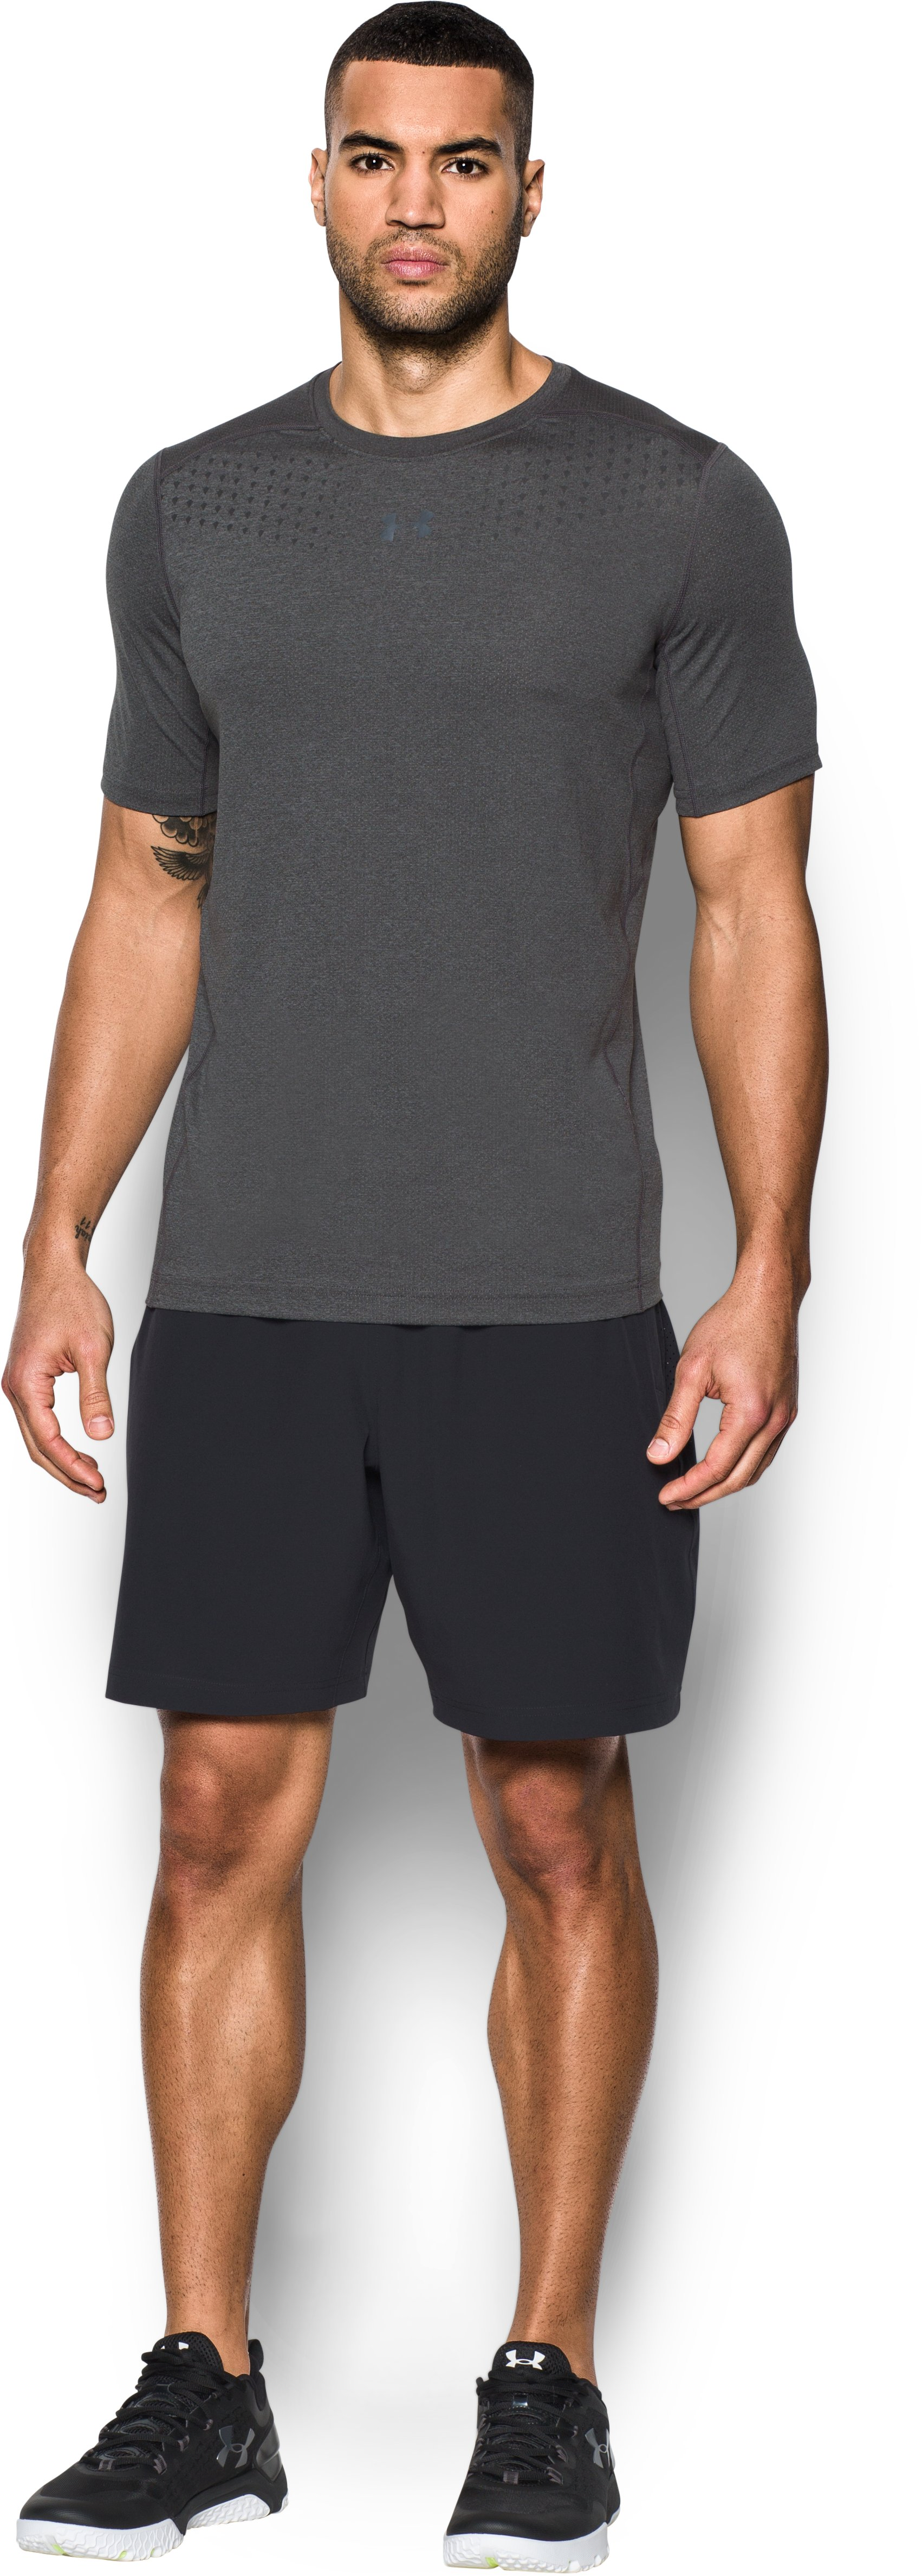 Men's HeatGear® CoolSwitch Twist Fitted Short Sleeve, Carbon Heather, Front